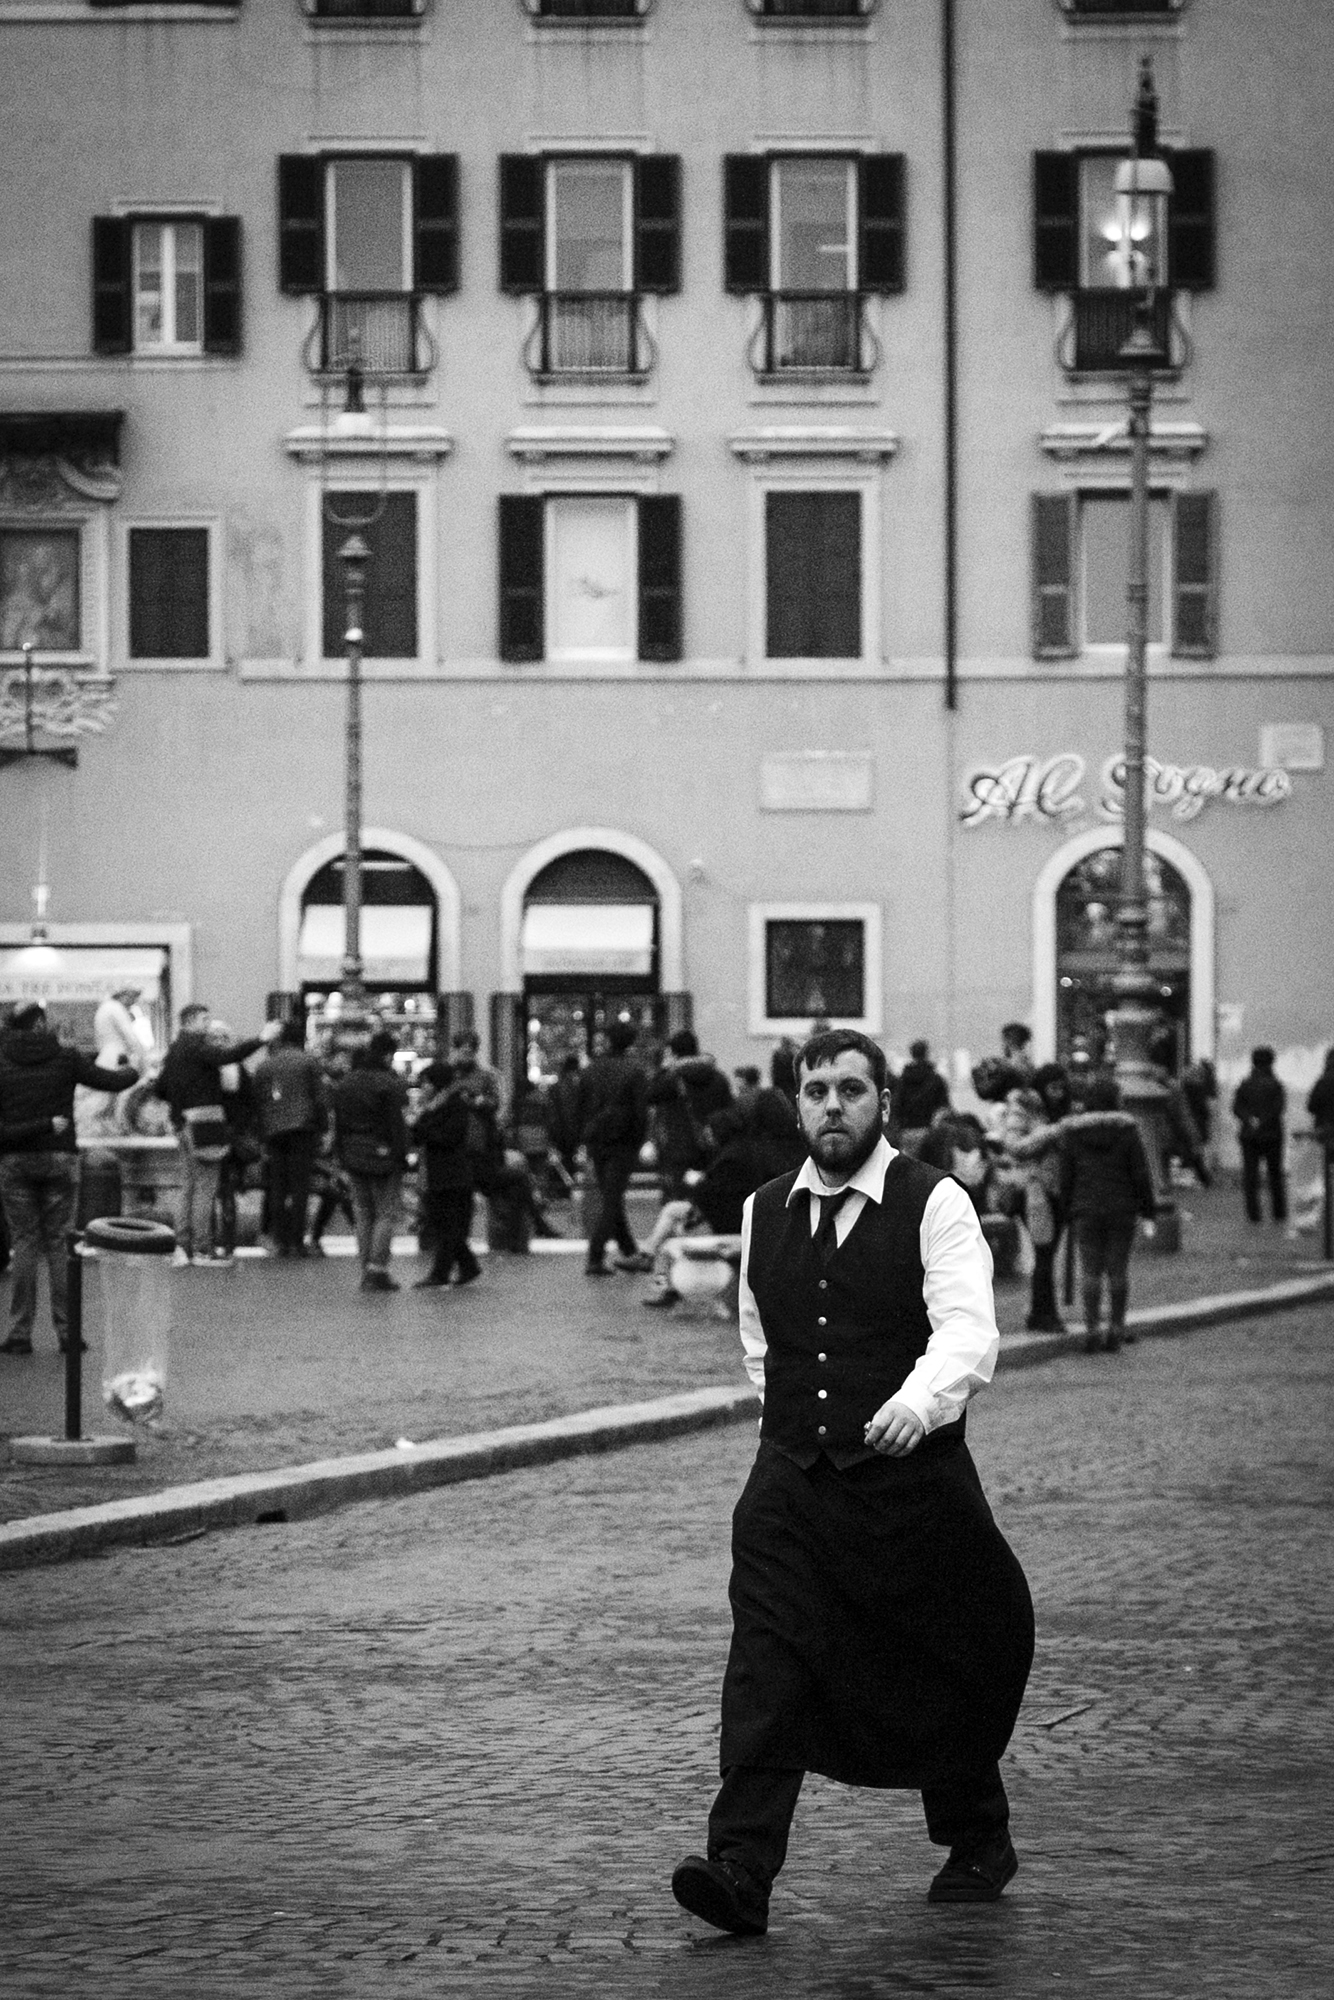 A waiter on Piazza Navona